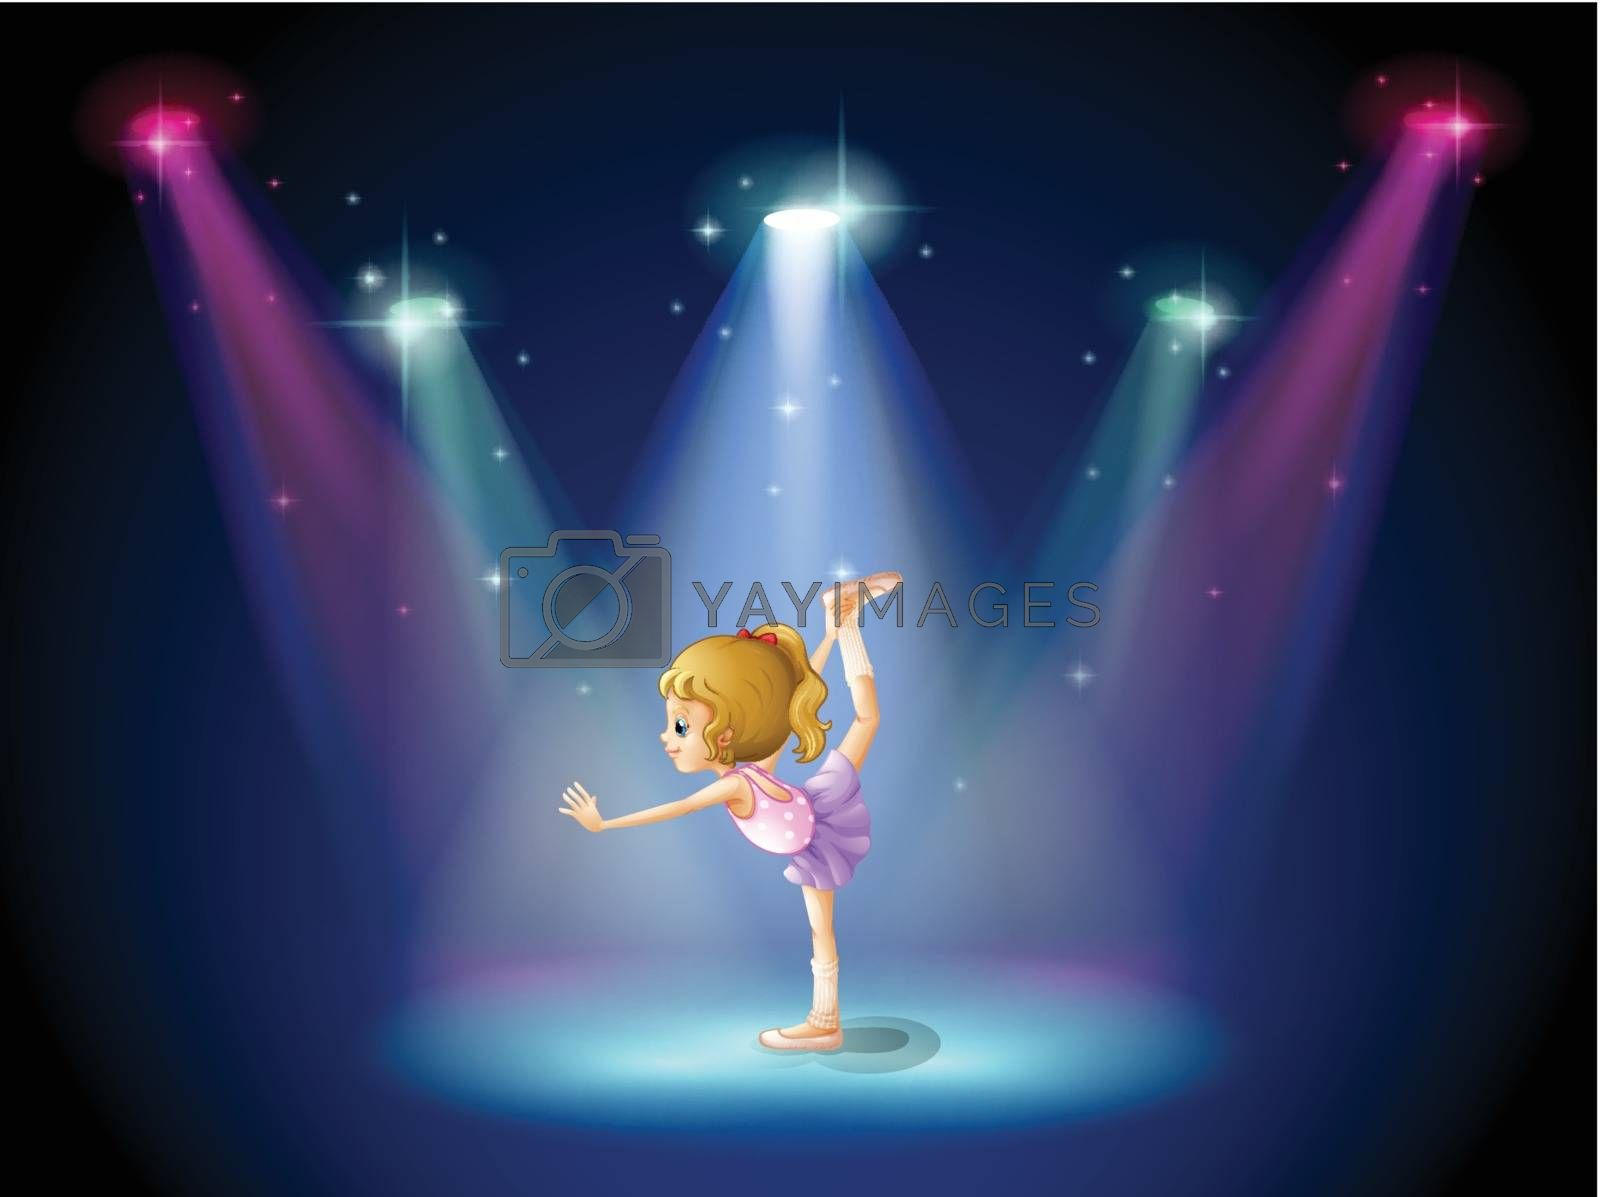 Royalty free image of A girl performing ballet on the stage with spotlights by iimages